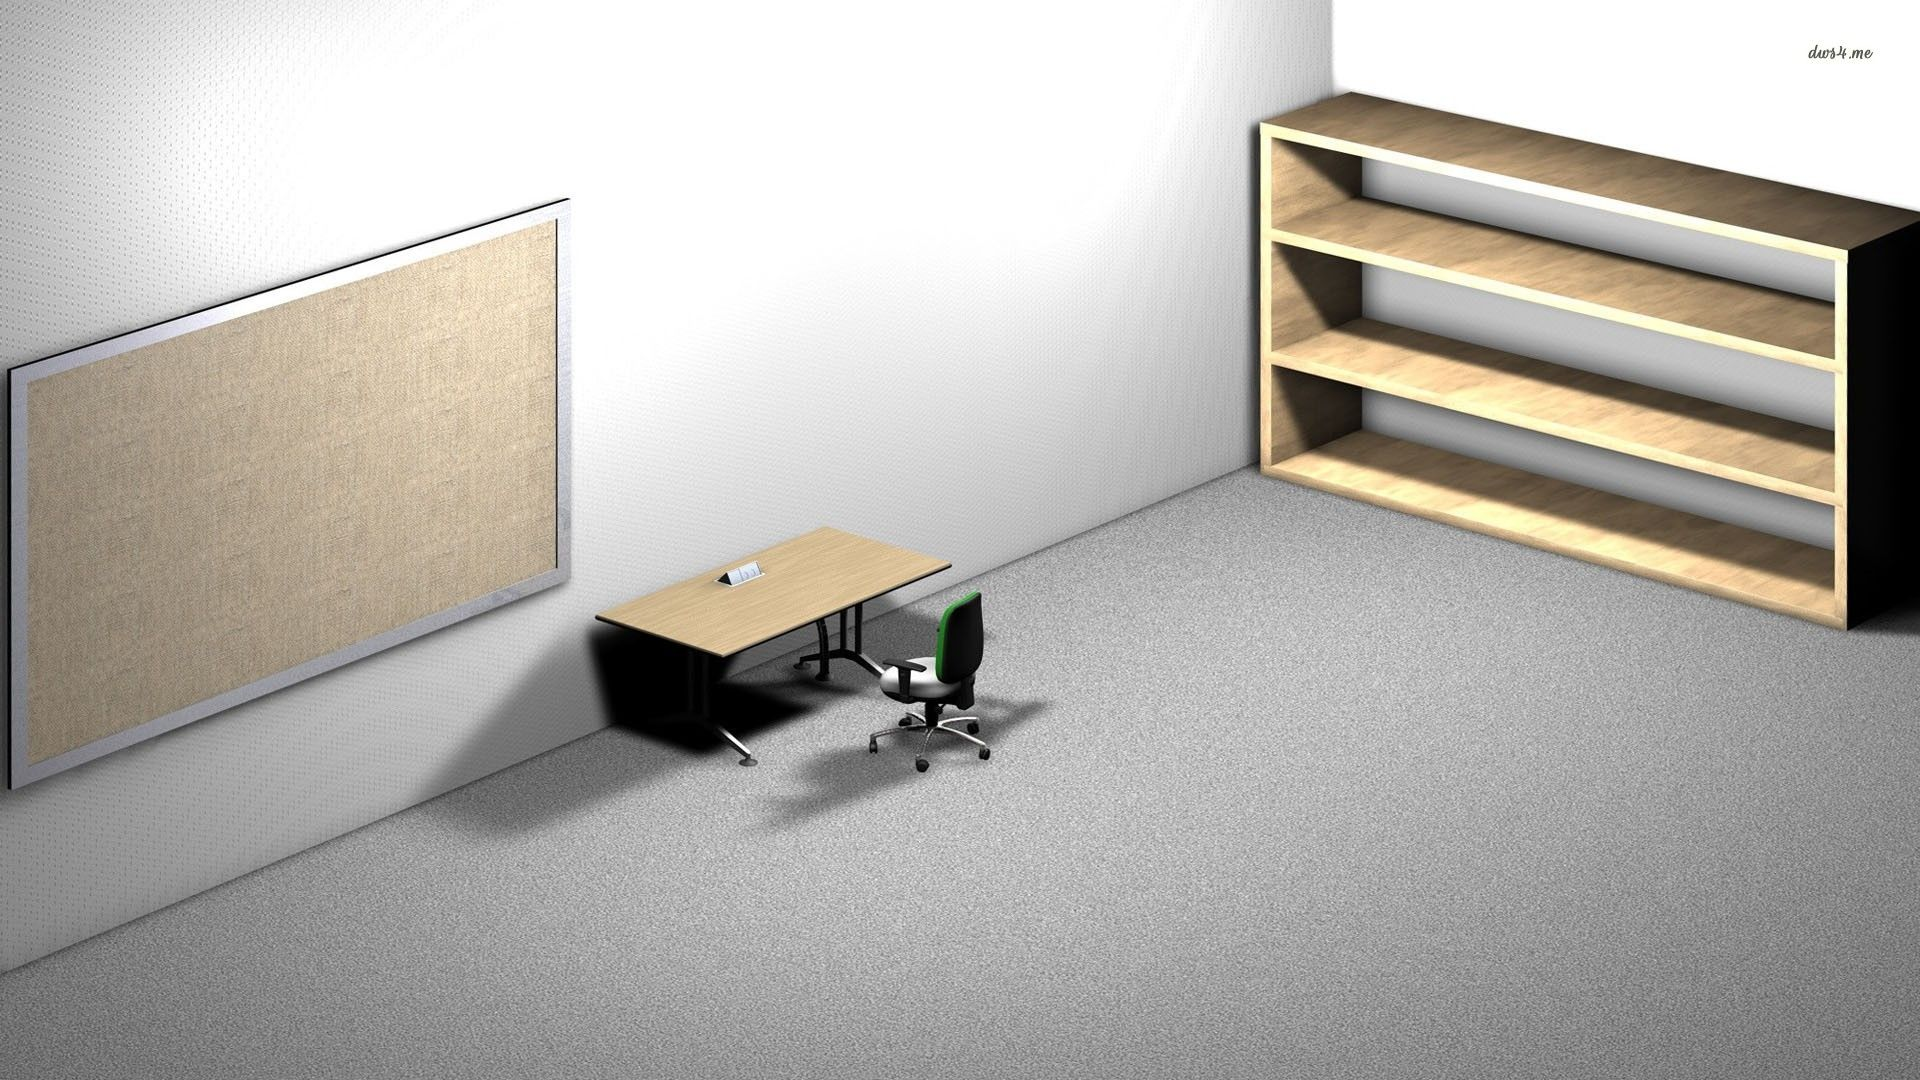 office wall papers. 48+ HD Quality Office Images, Wallpapers Base Office Wall Papers